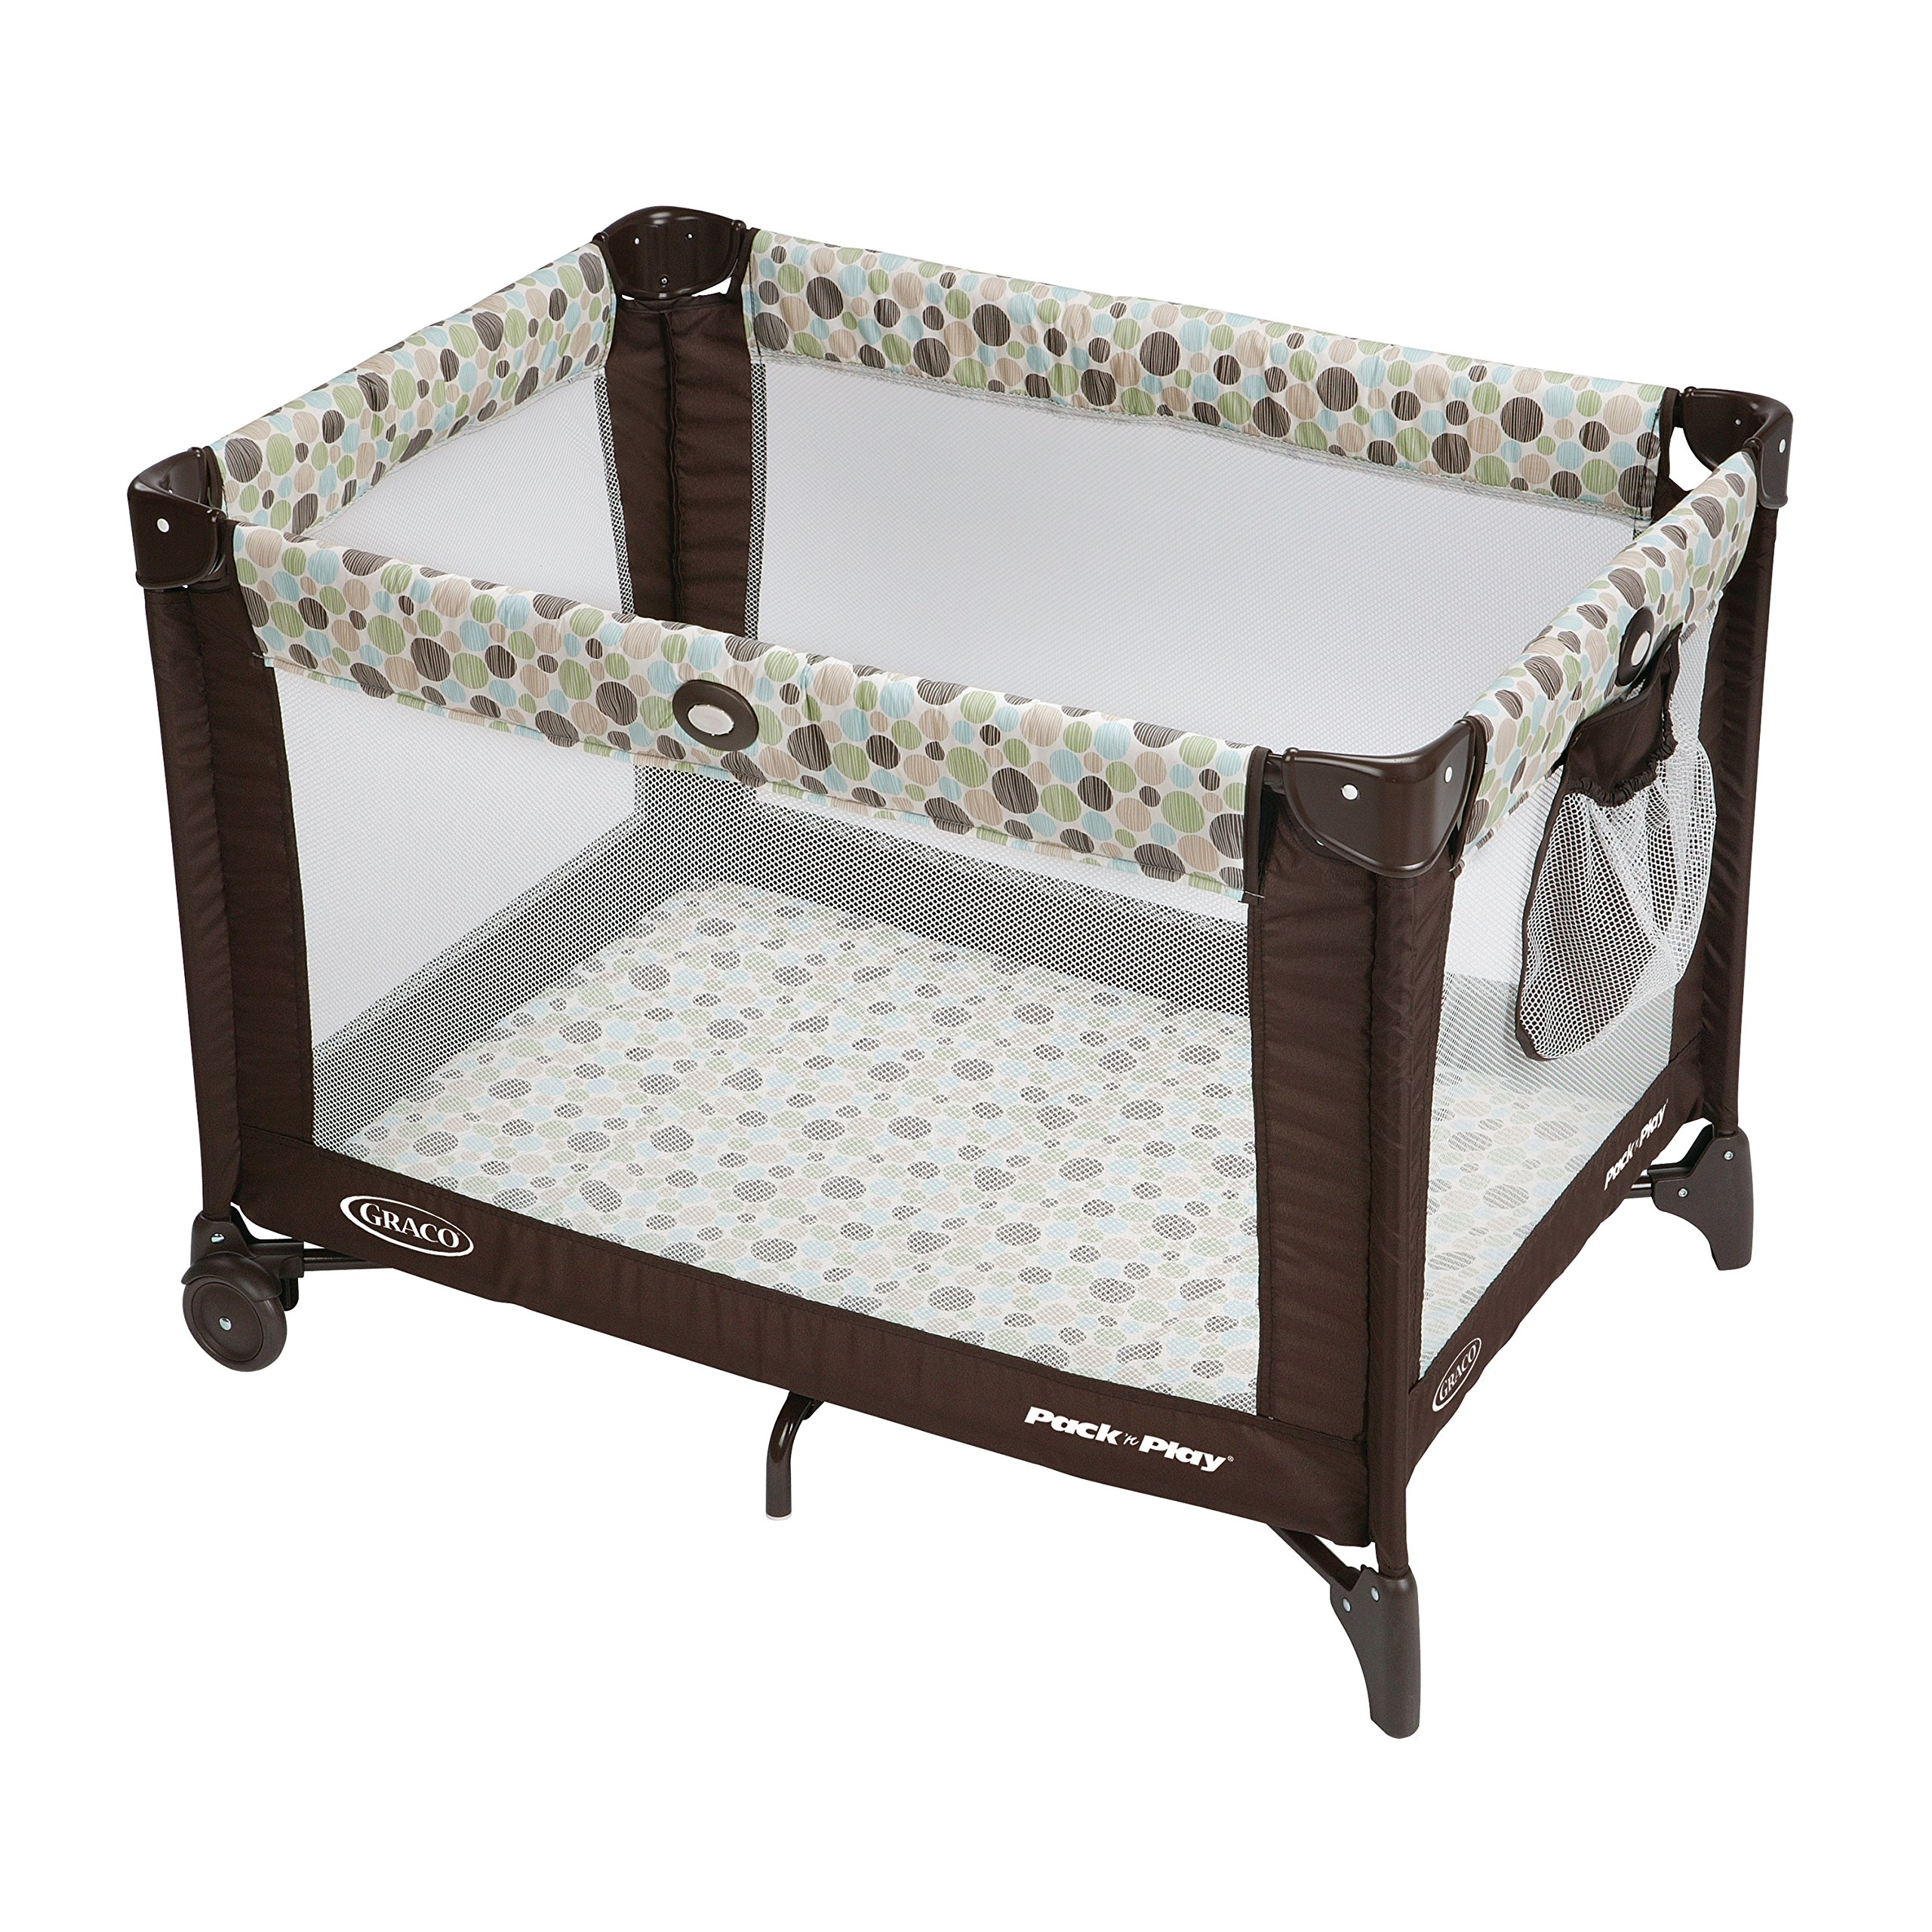 Graco Pack 'n Play Playard, Aspery, One Size